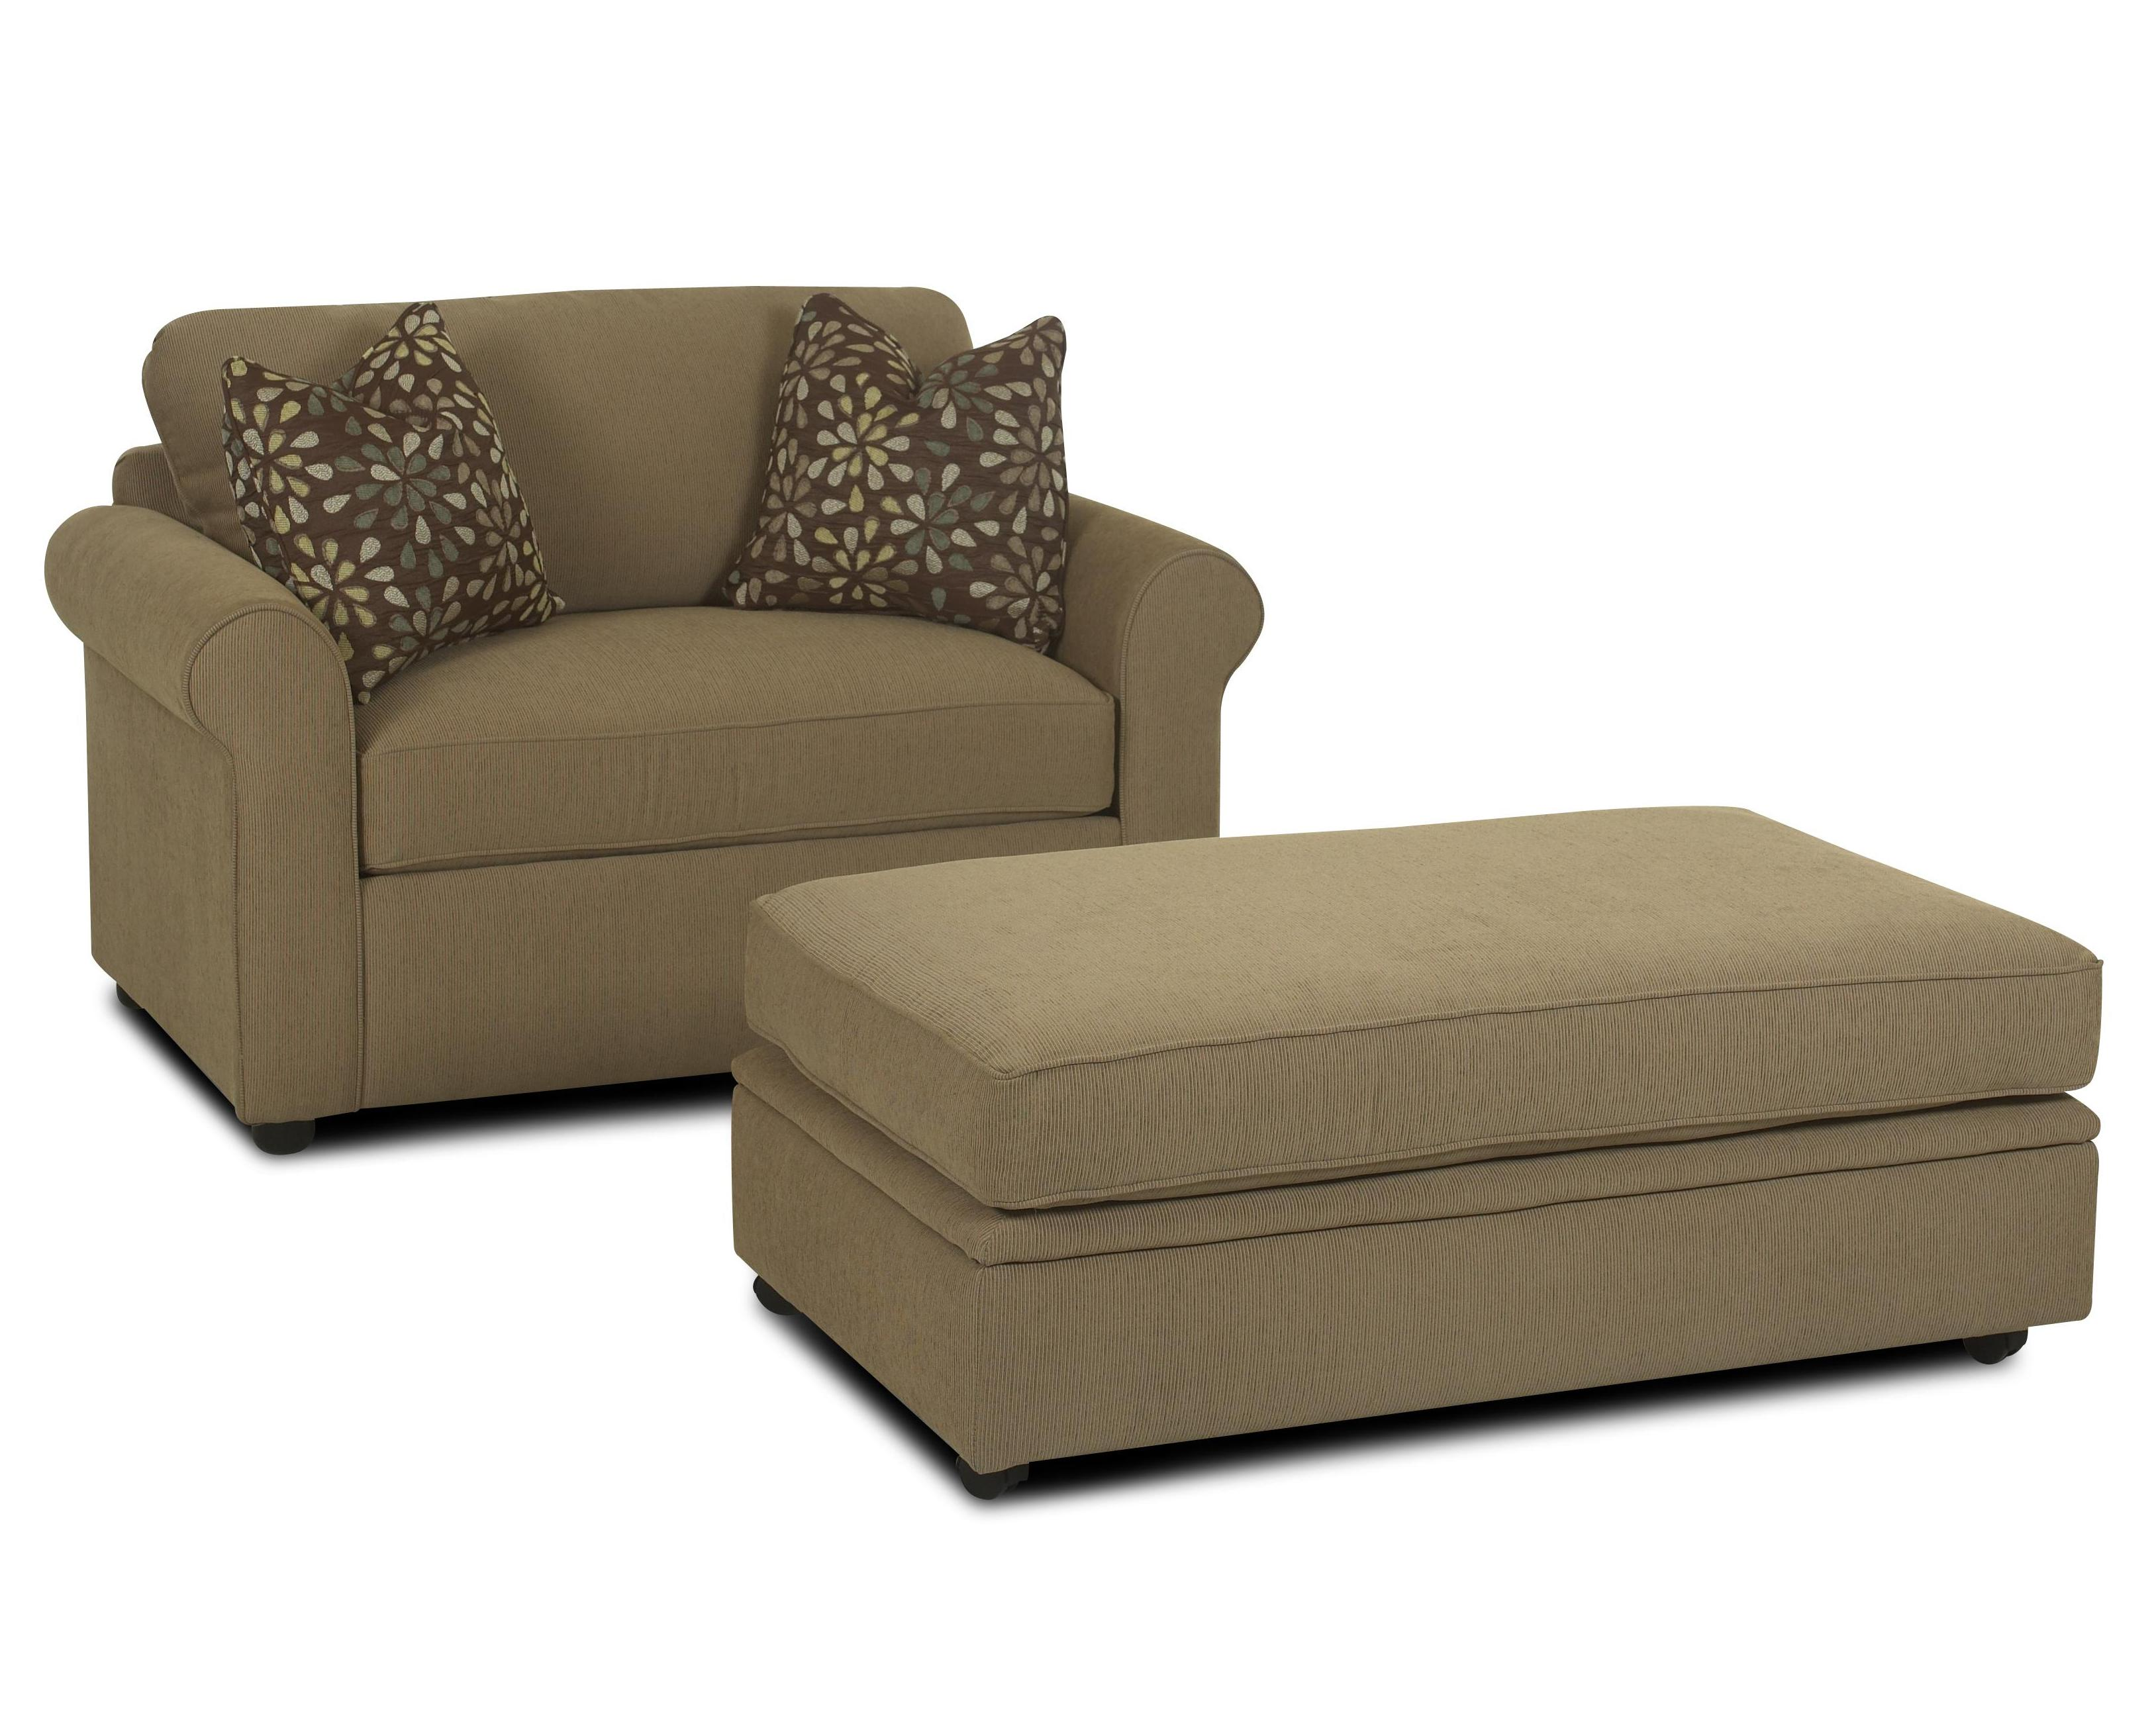 Royal Chair Sleeper & Storage Ottoman